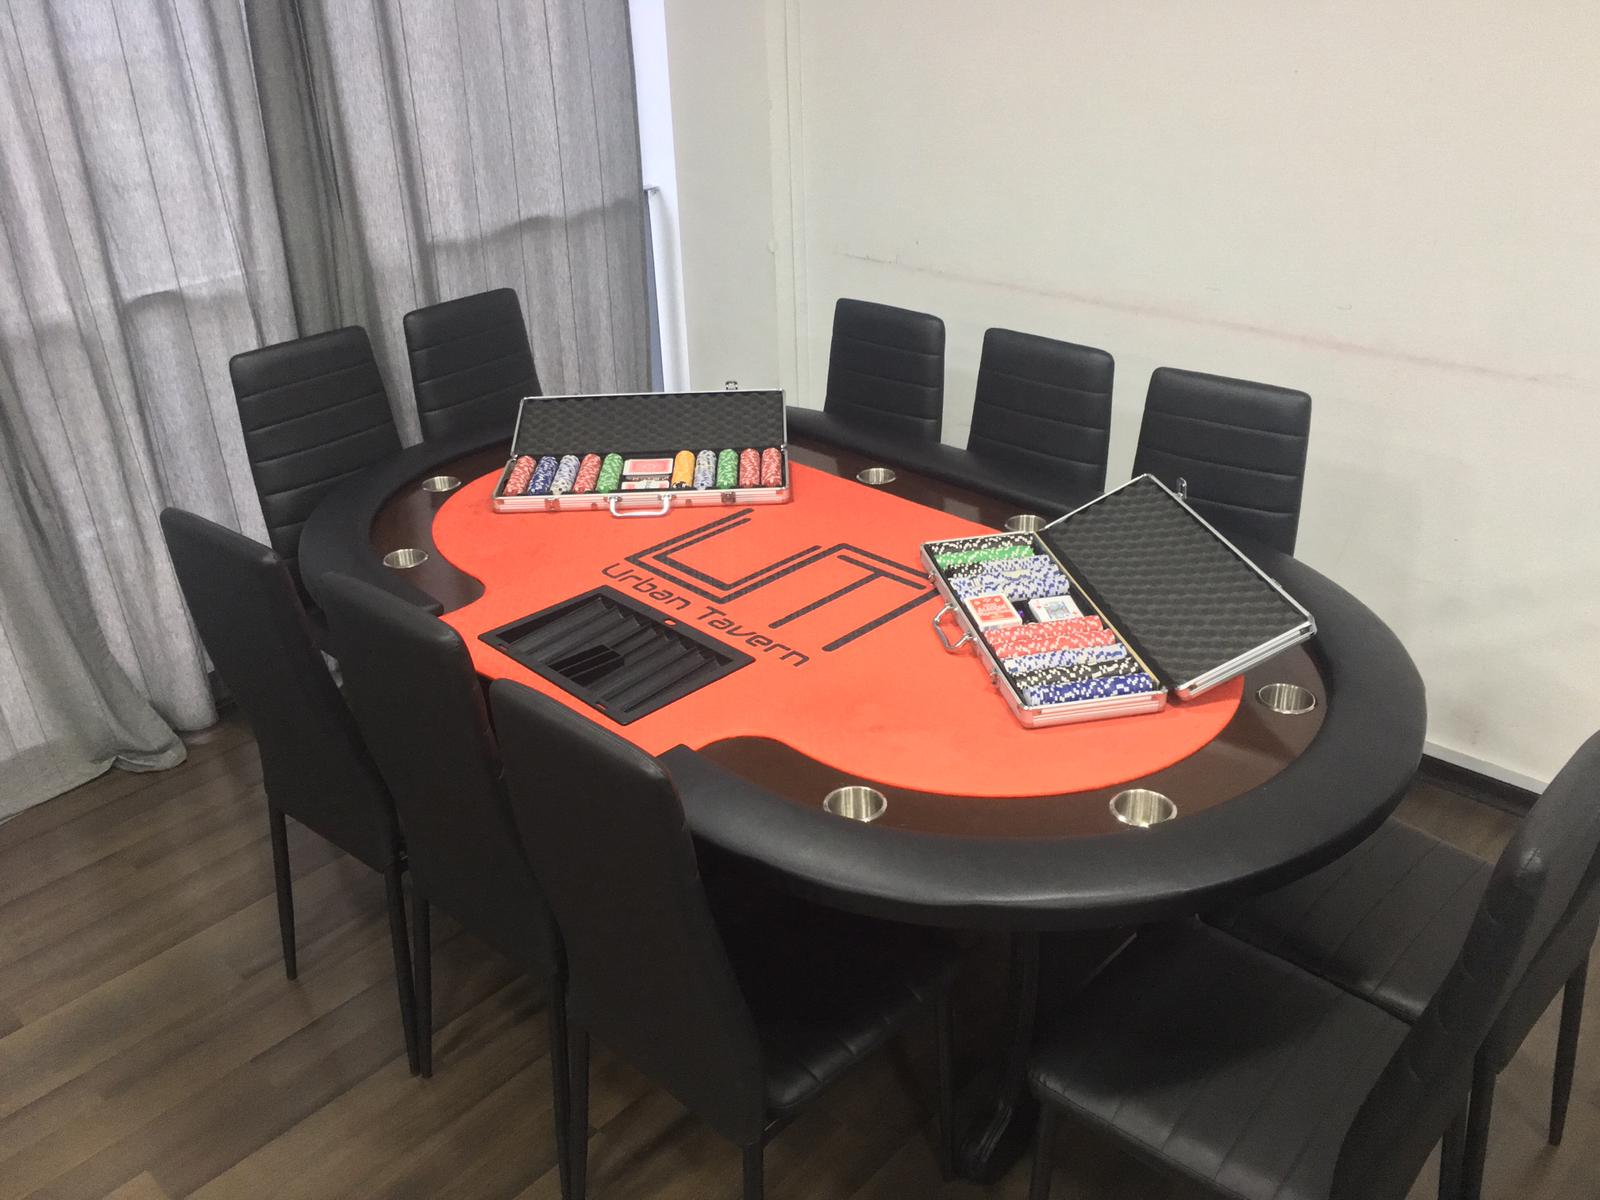 poker table event space birthdays